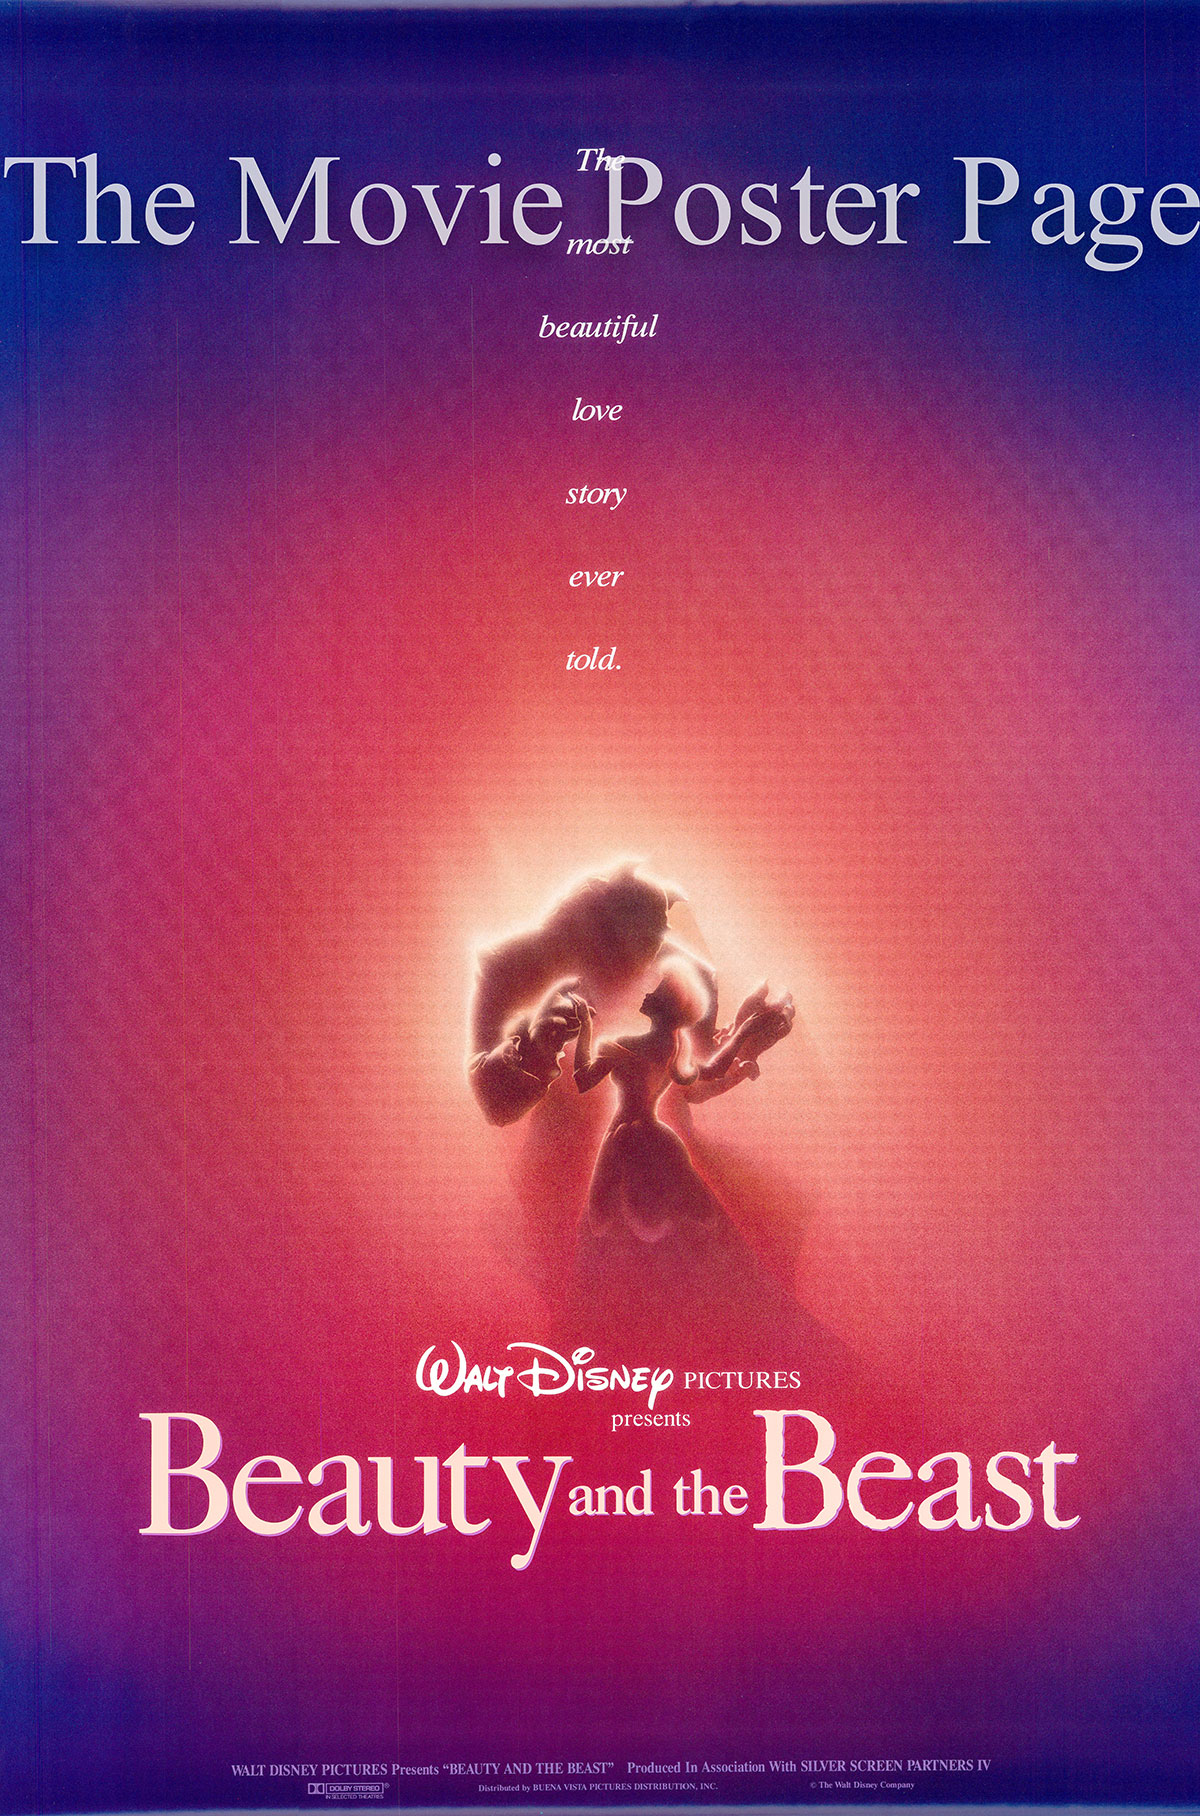 Pictured is a US advance one-sheet poster for the 1991 Gary Trousdale and Kirk Wise Disney production Beauty and the Beast starring Paige O'Hara as the voice of Belle.